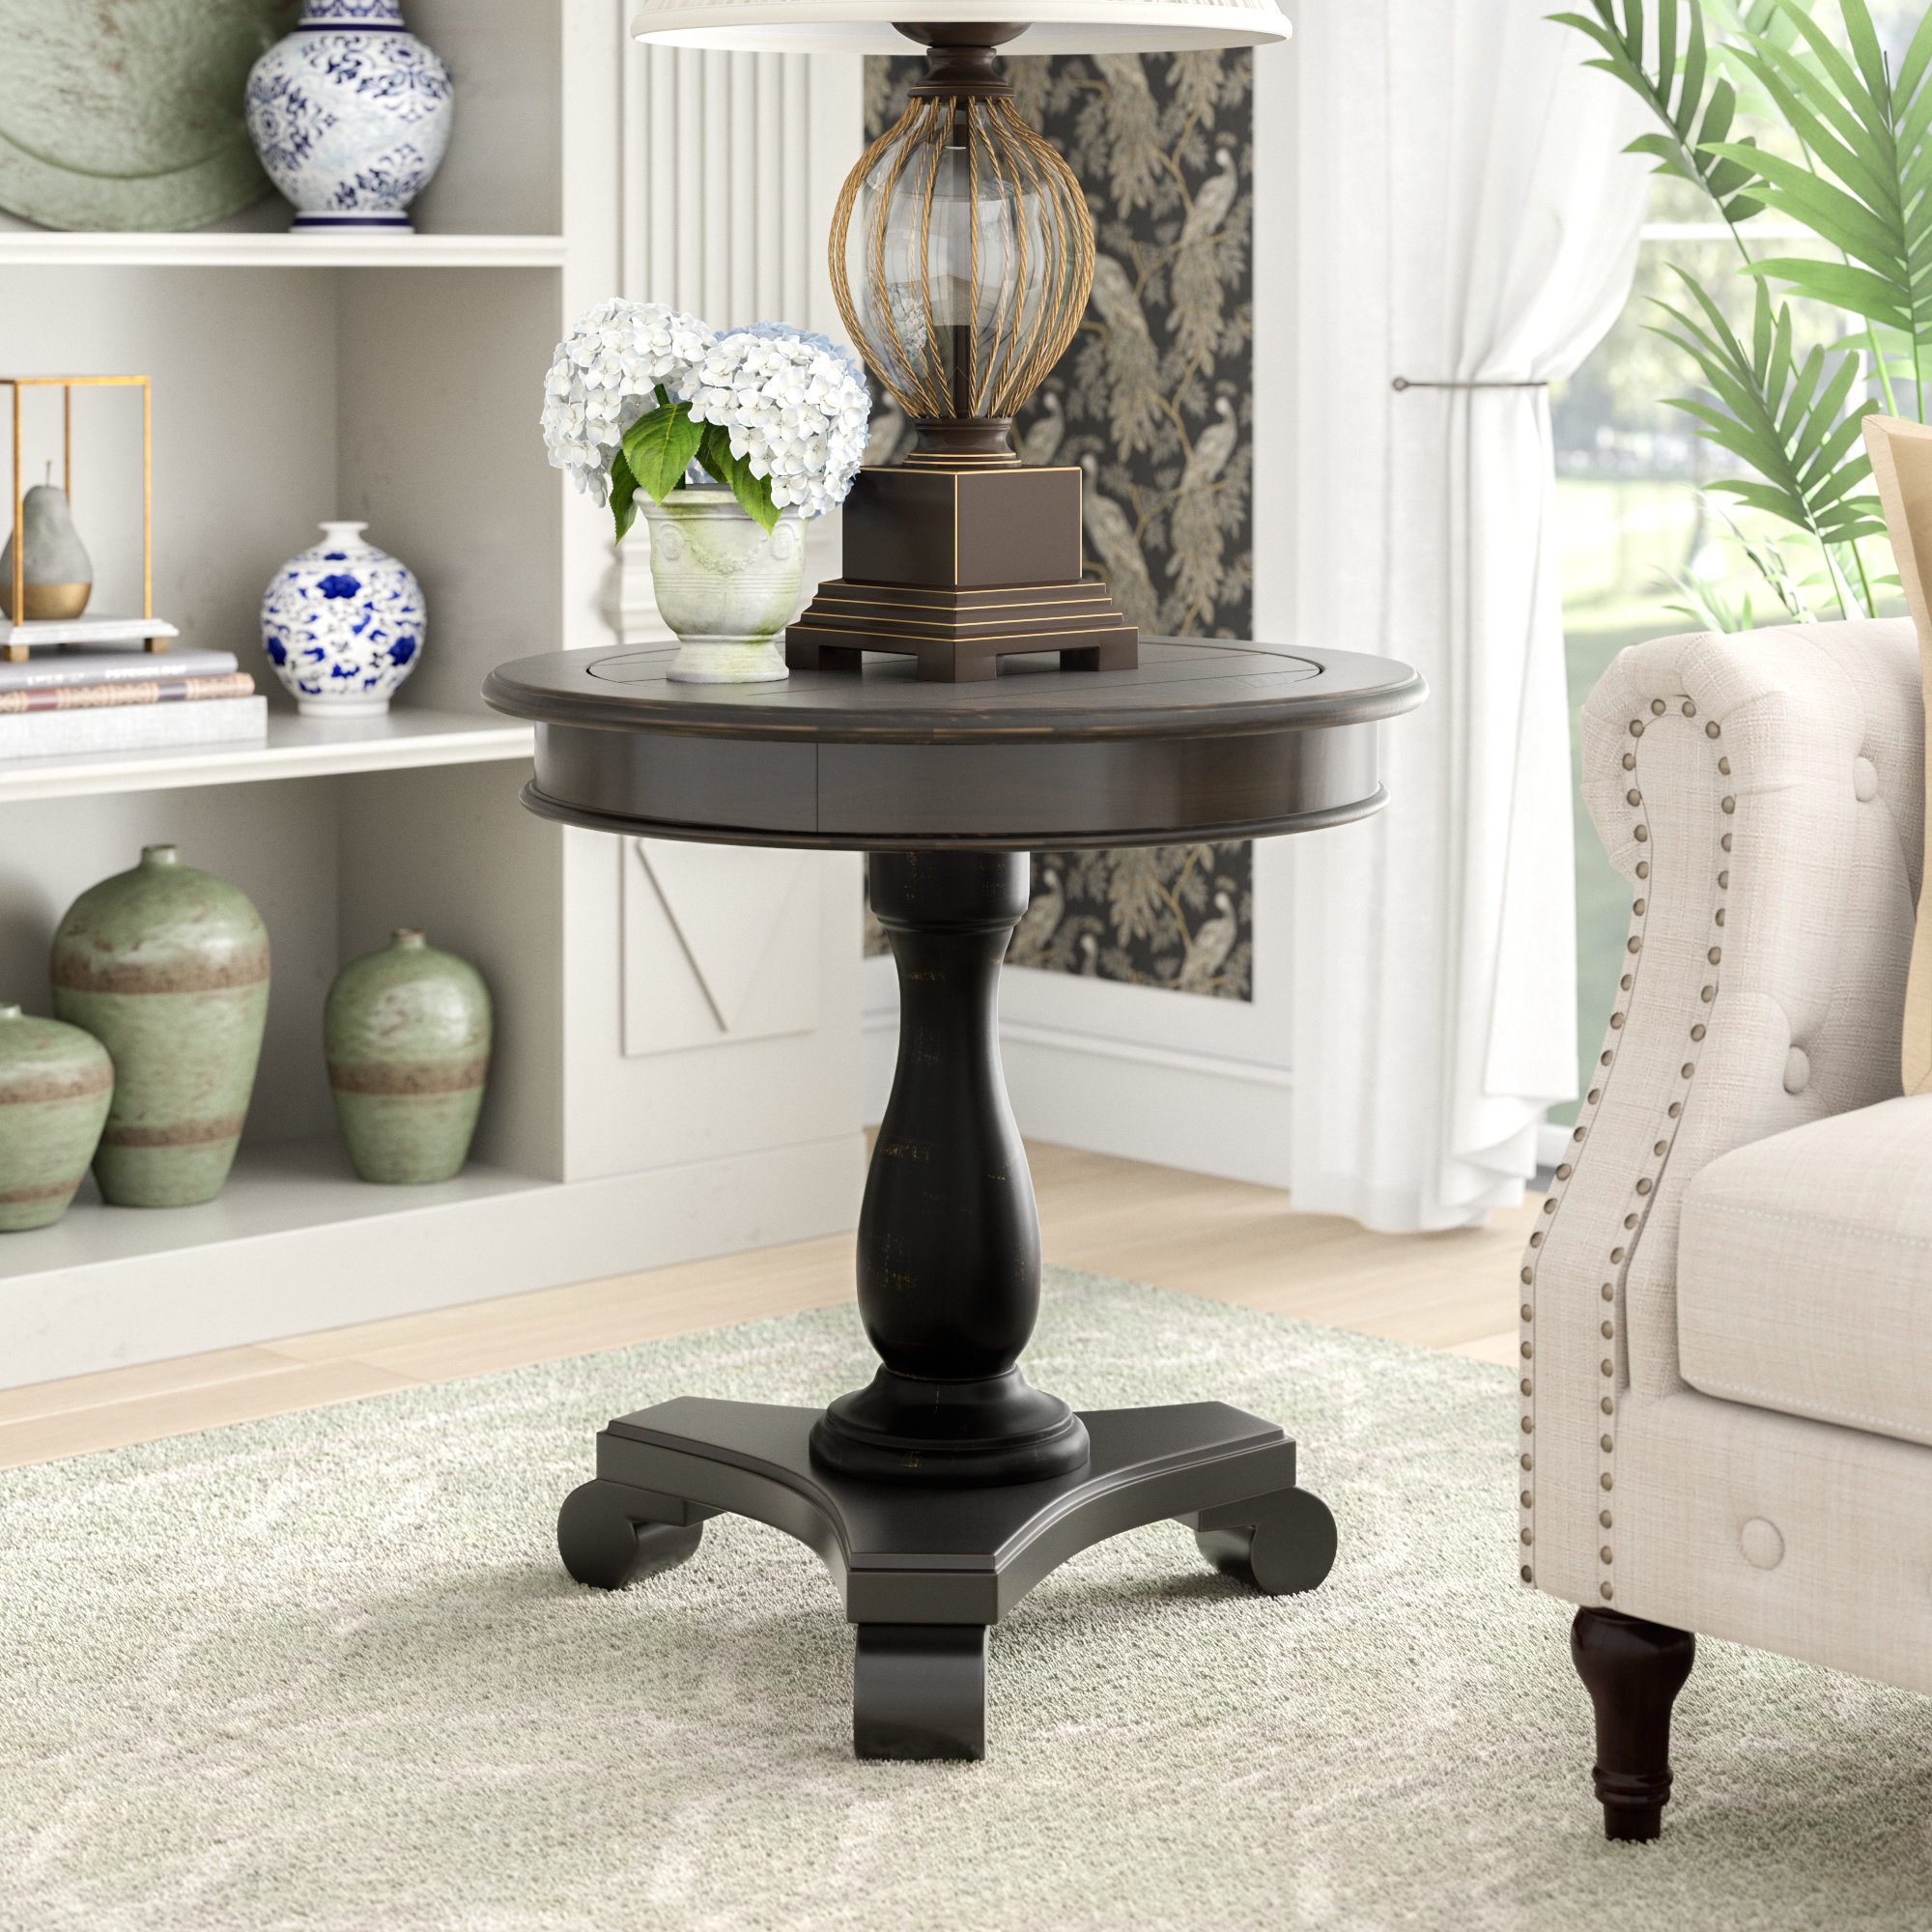 media side table lana end room essentials mixed material accent quickview contemporary home decor country tablecloths round cloth covers door console cabinet stylish lamps coffee